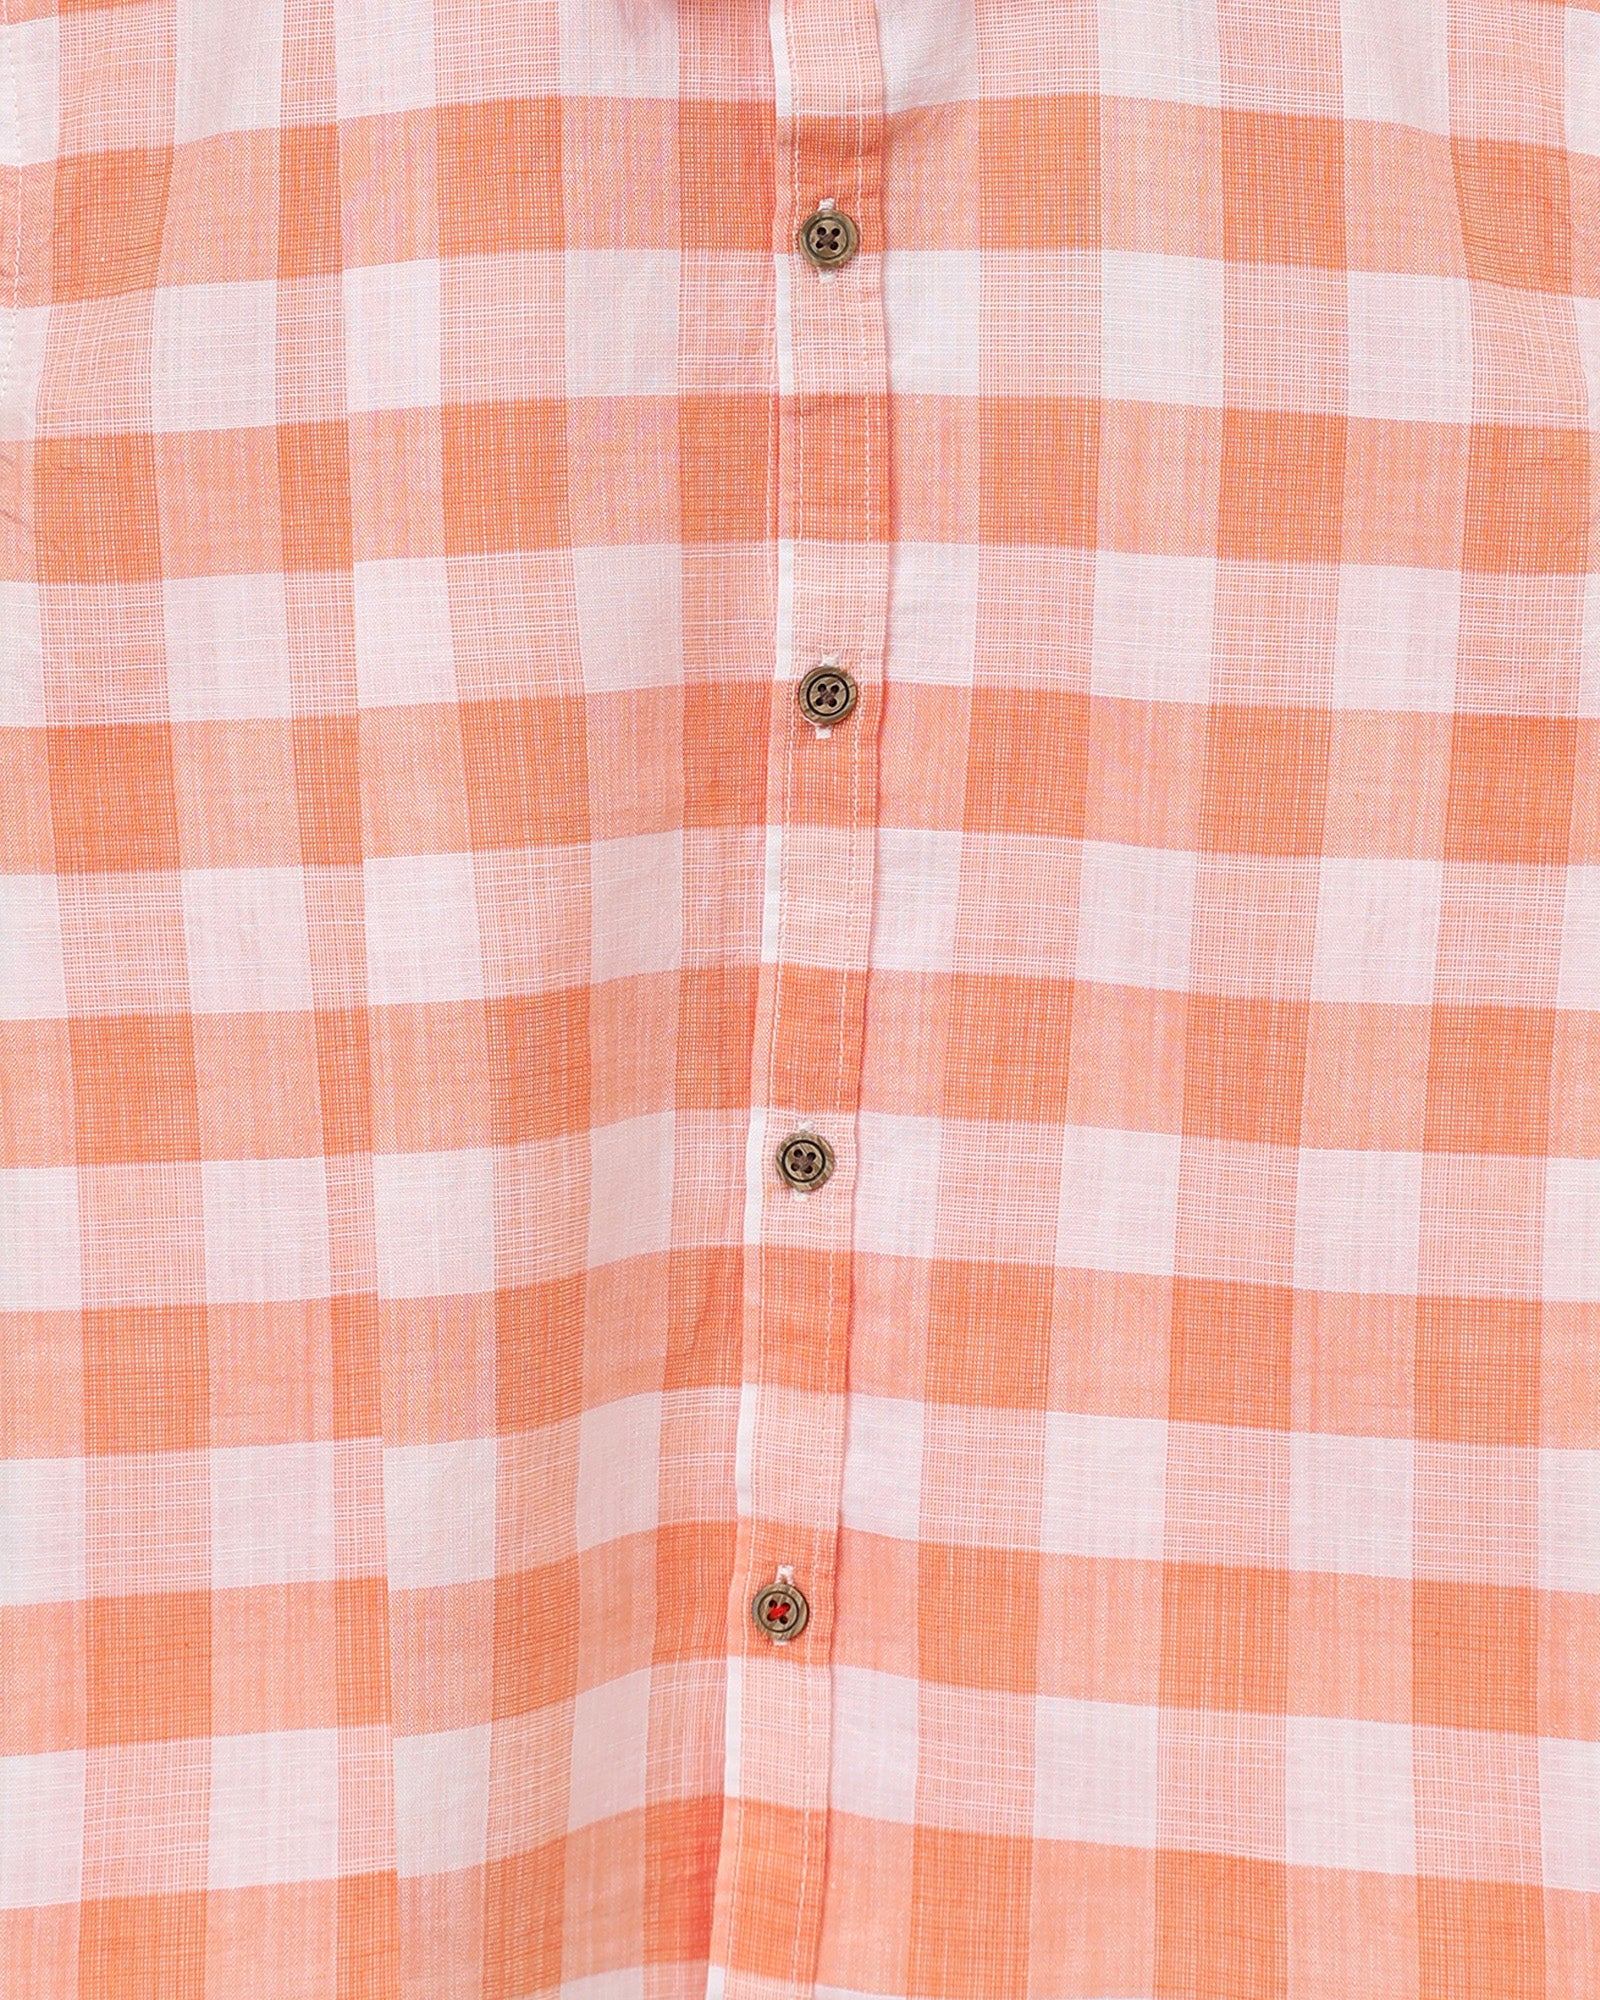 Tonal Checkered Shirt